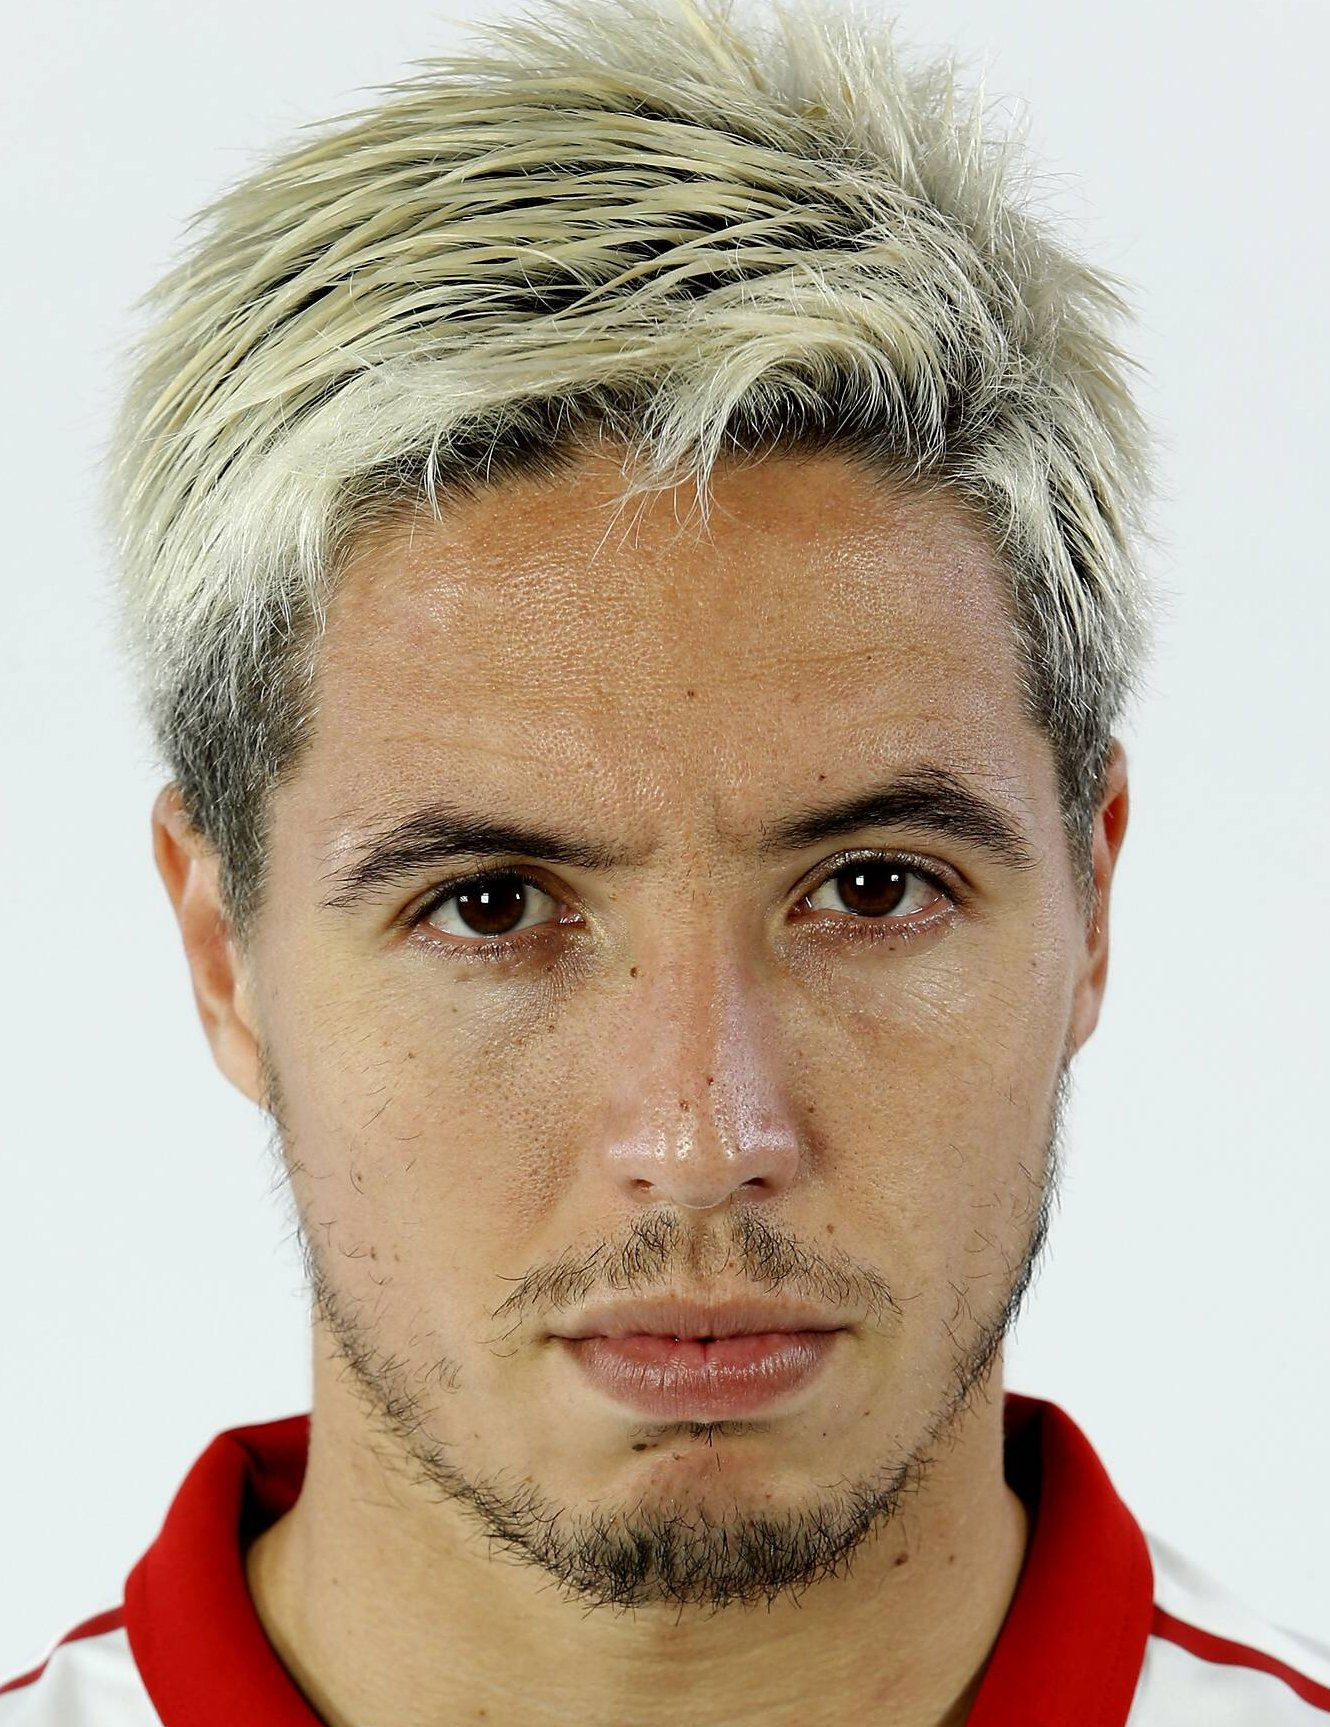 c29cfa1e7 Samir Nasri - Player Profile 18 19